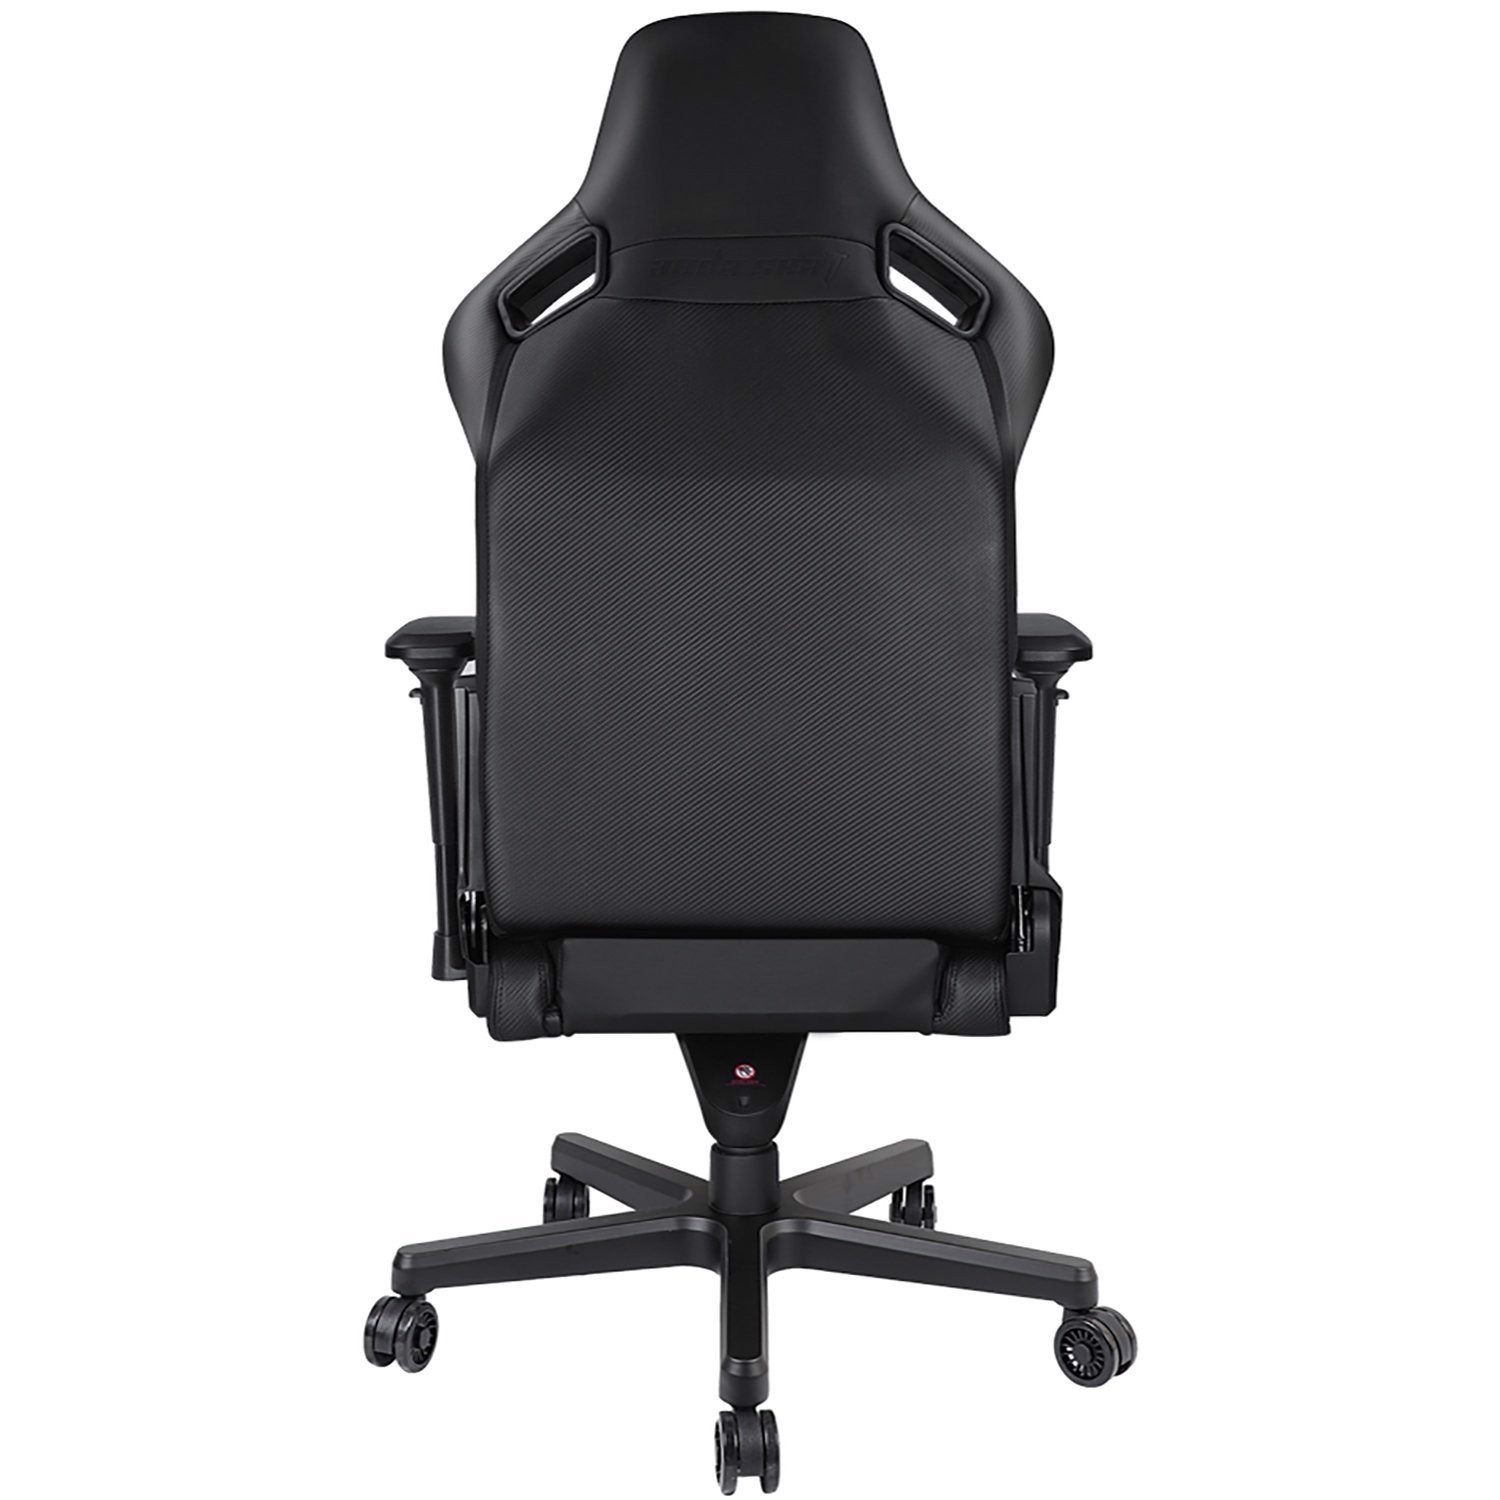 Ghế Anda Seat Infinity - 100% Real Leather 4D Armrest Kingsize Gaming Chair